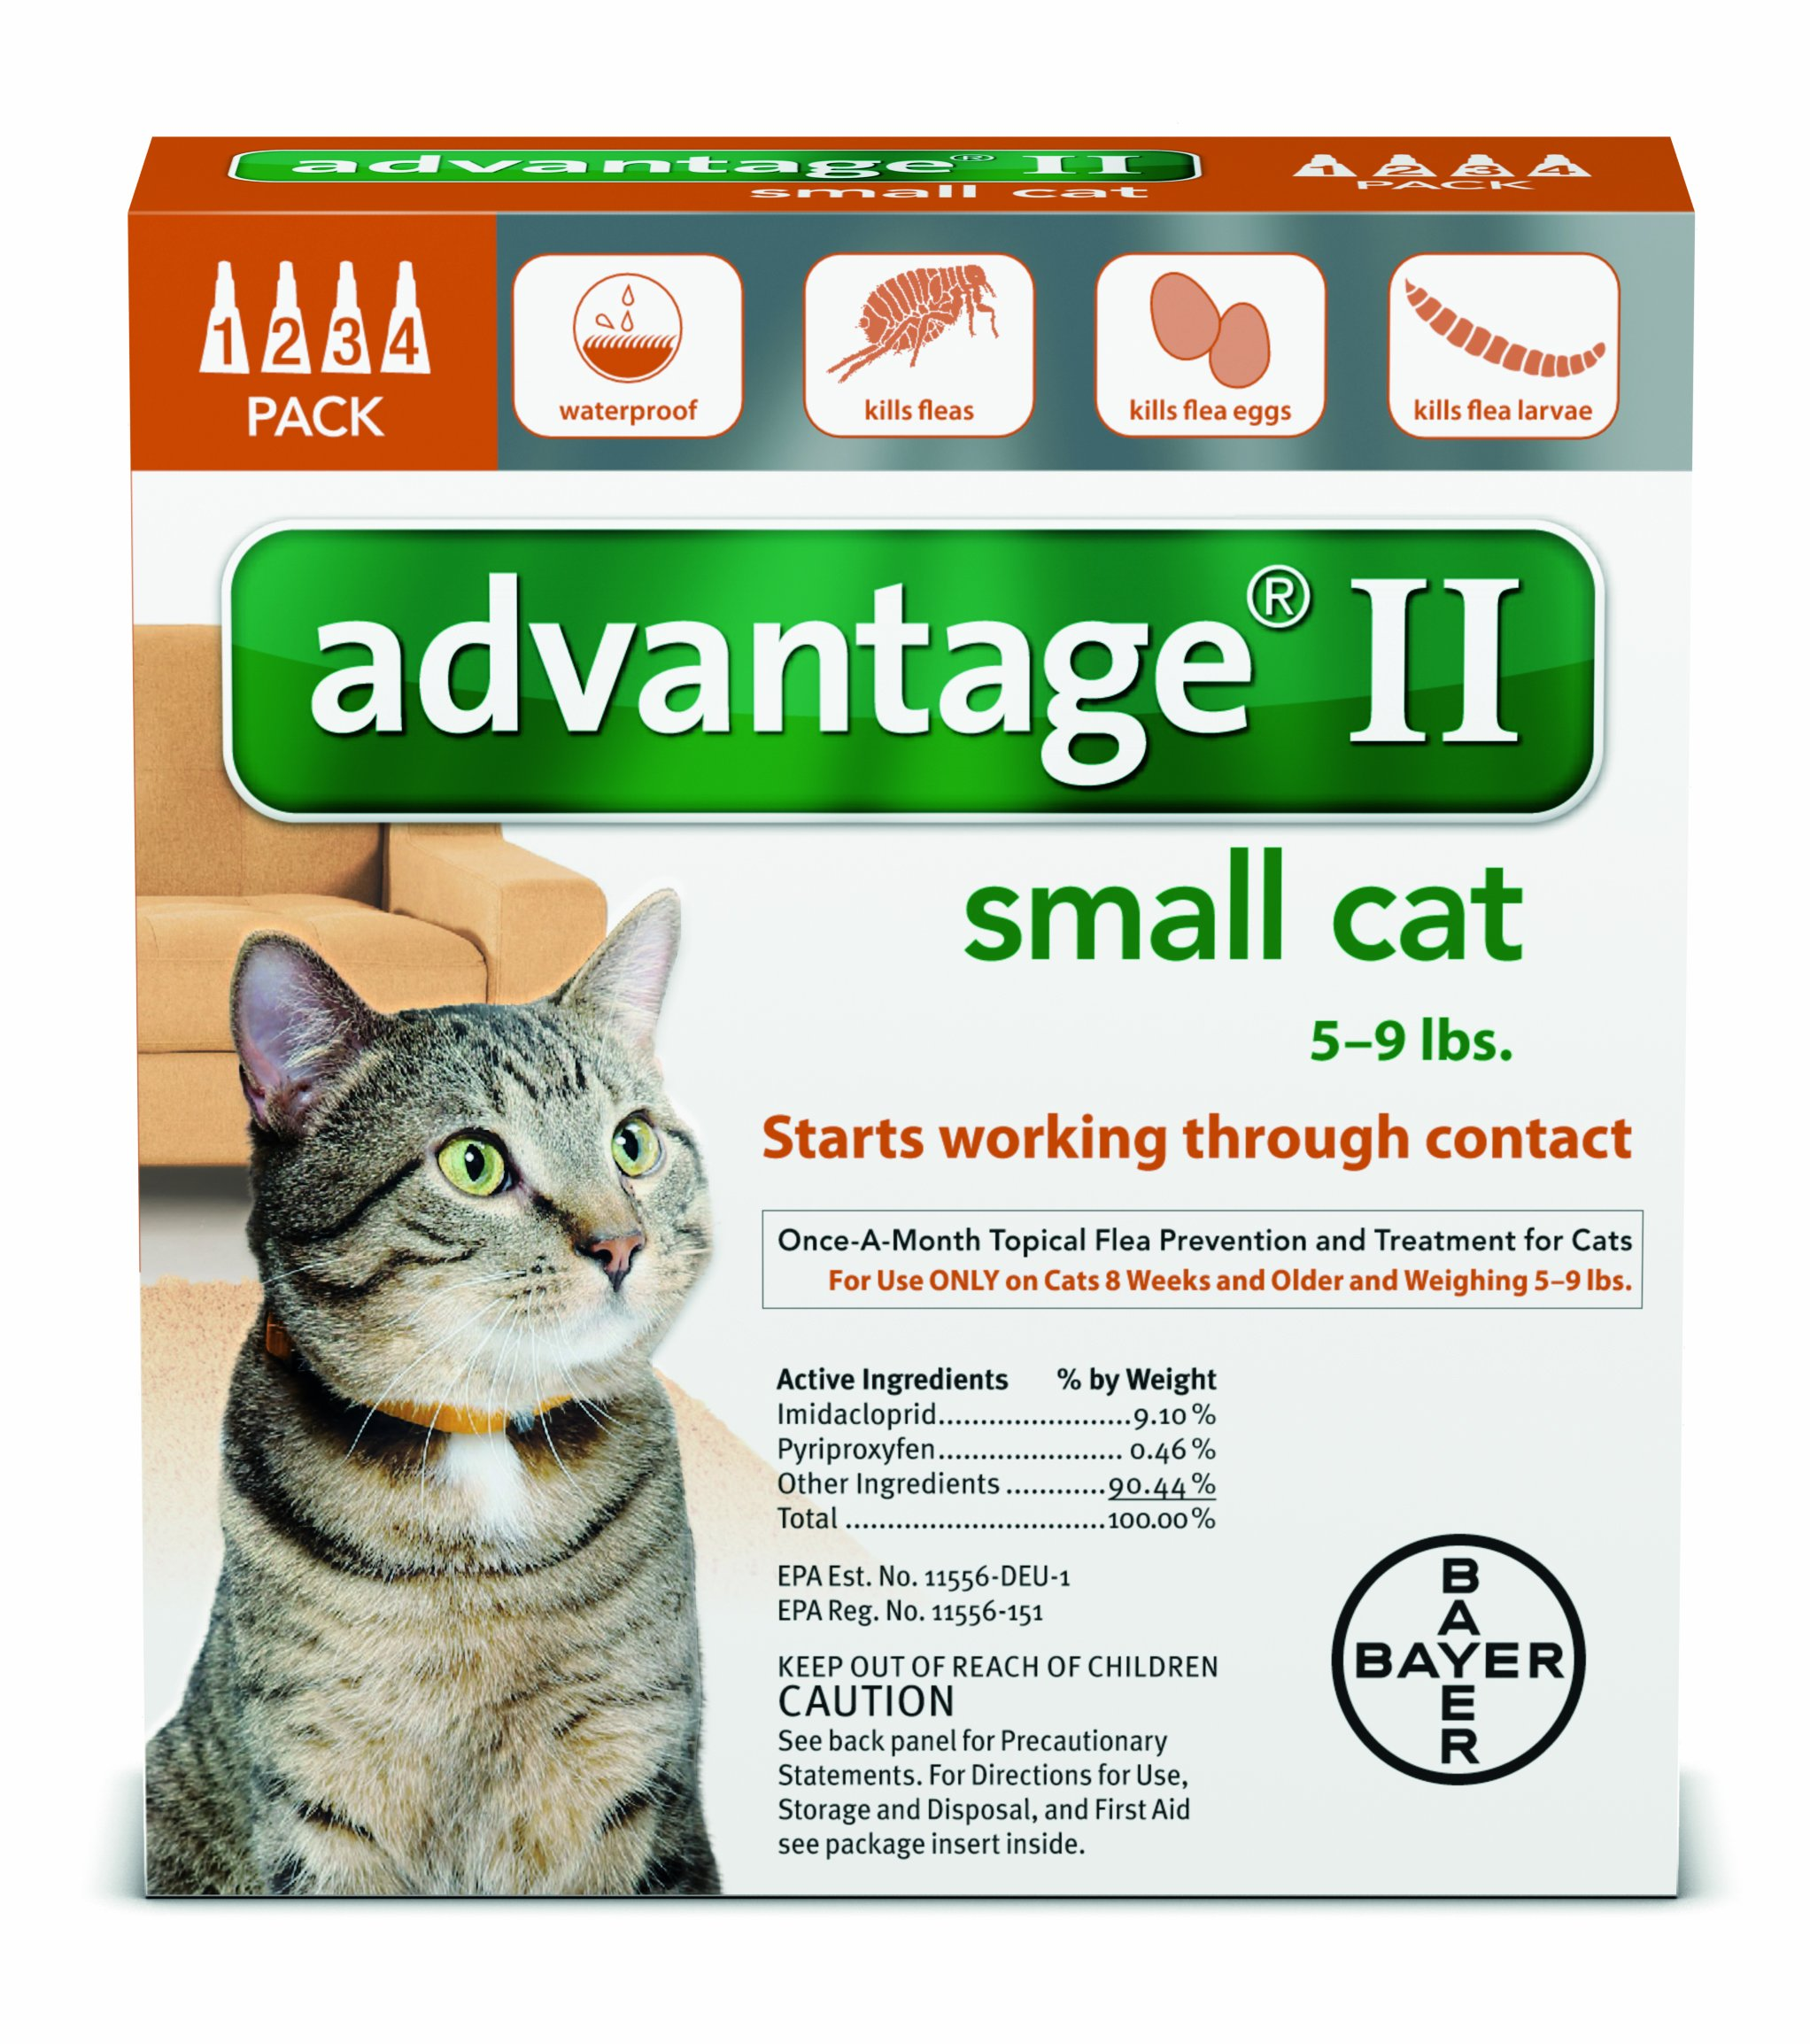 Bayer Animal Health Advantage Once-A-Month Topical Flea Treatment for Cats & Kittens up to 9 Lbs (4 Applications)